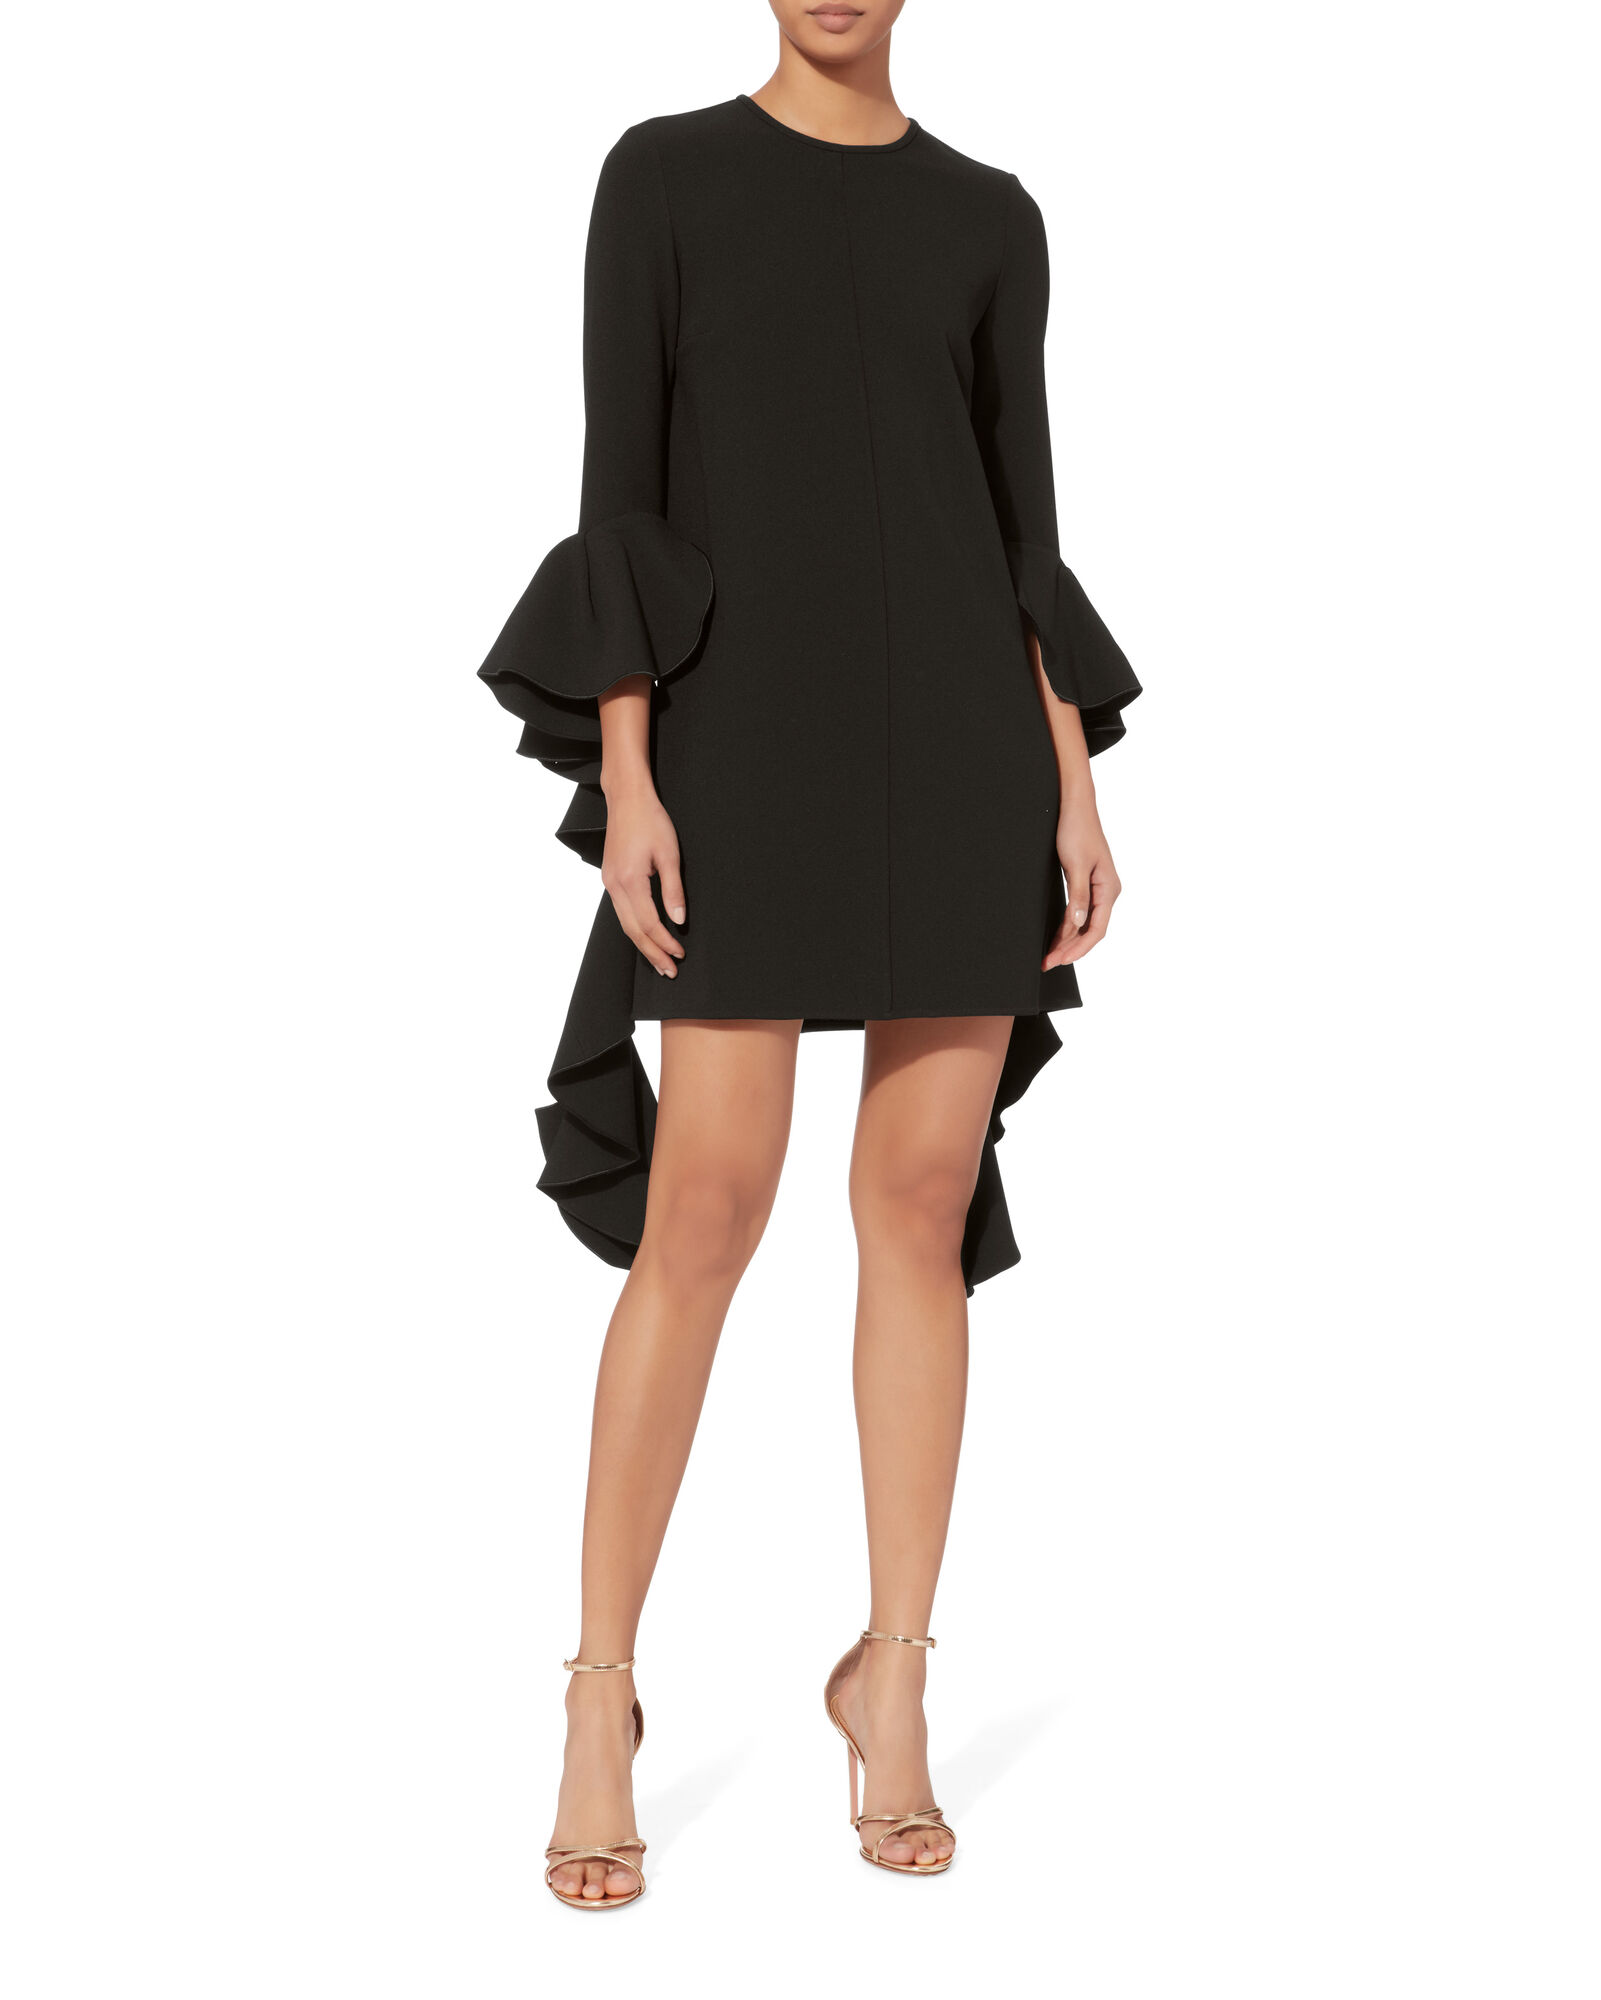 Kilkenny Black Mini Dress, BLACK, hi-res